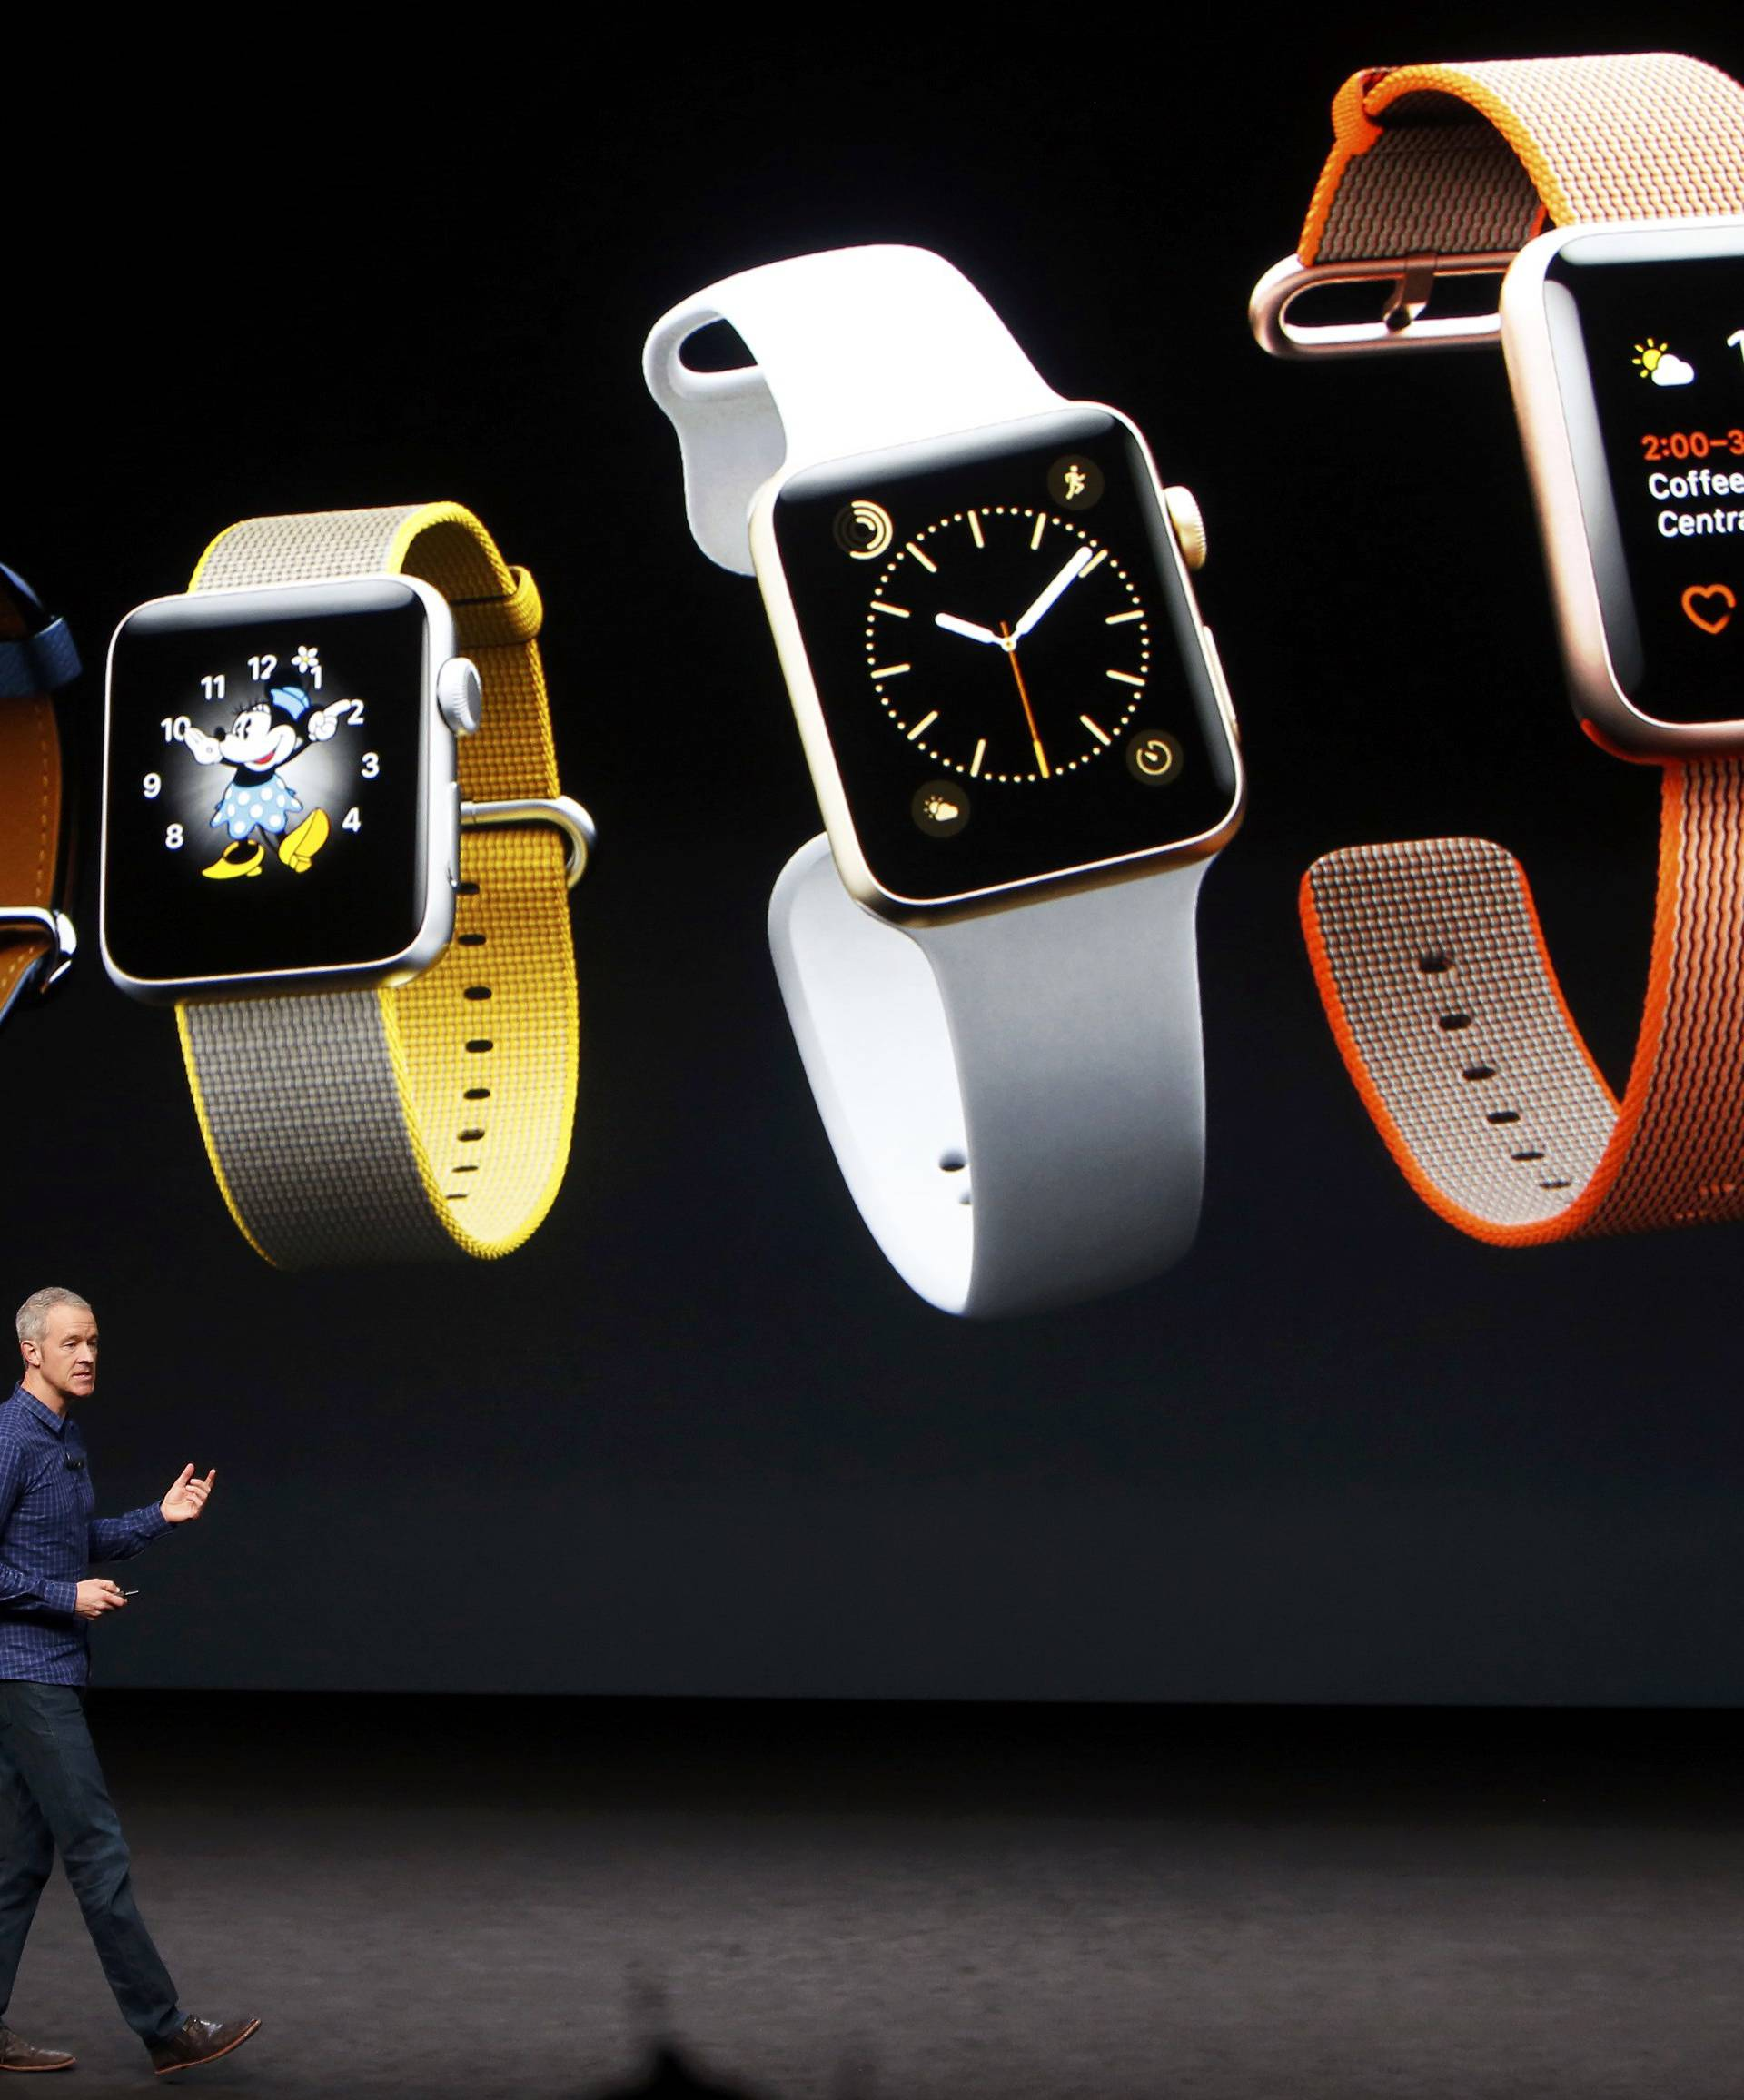 Jeff Williams discusses the Apple Watch Series 2 during an Apple media event in San Francisco